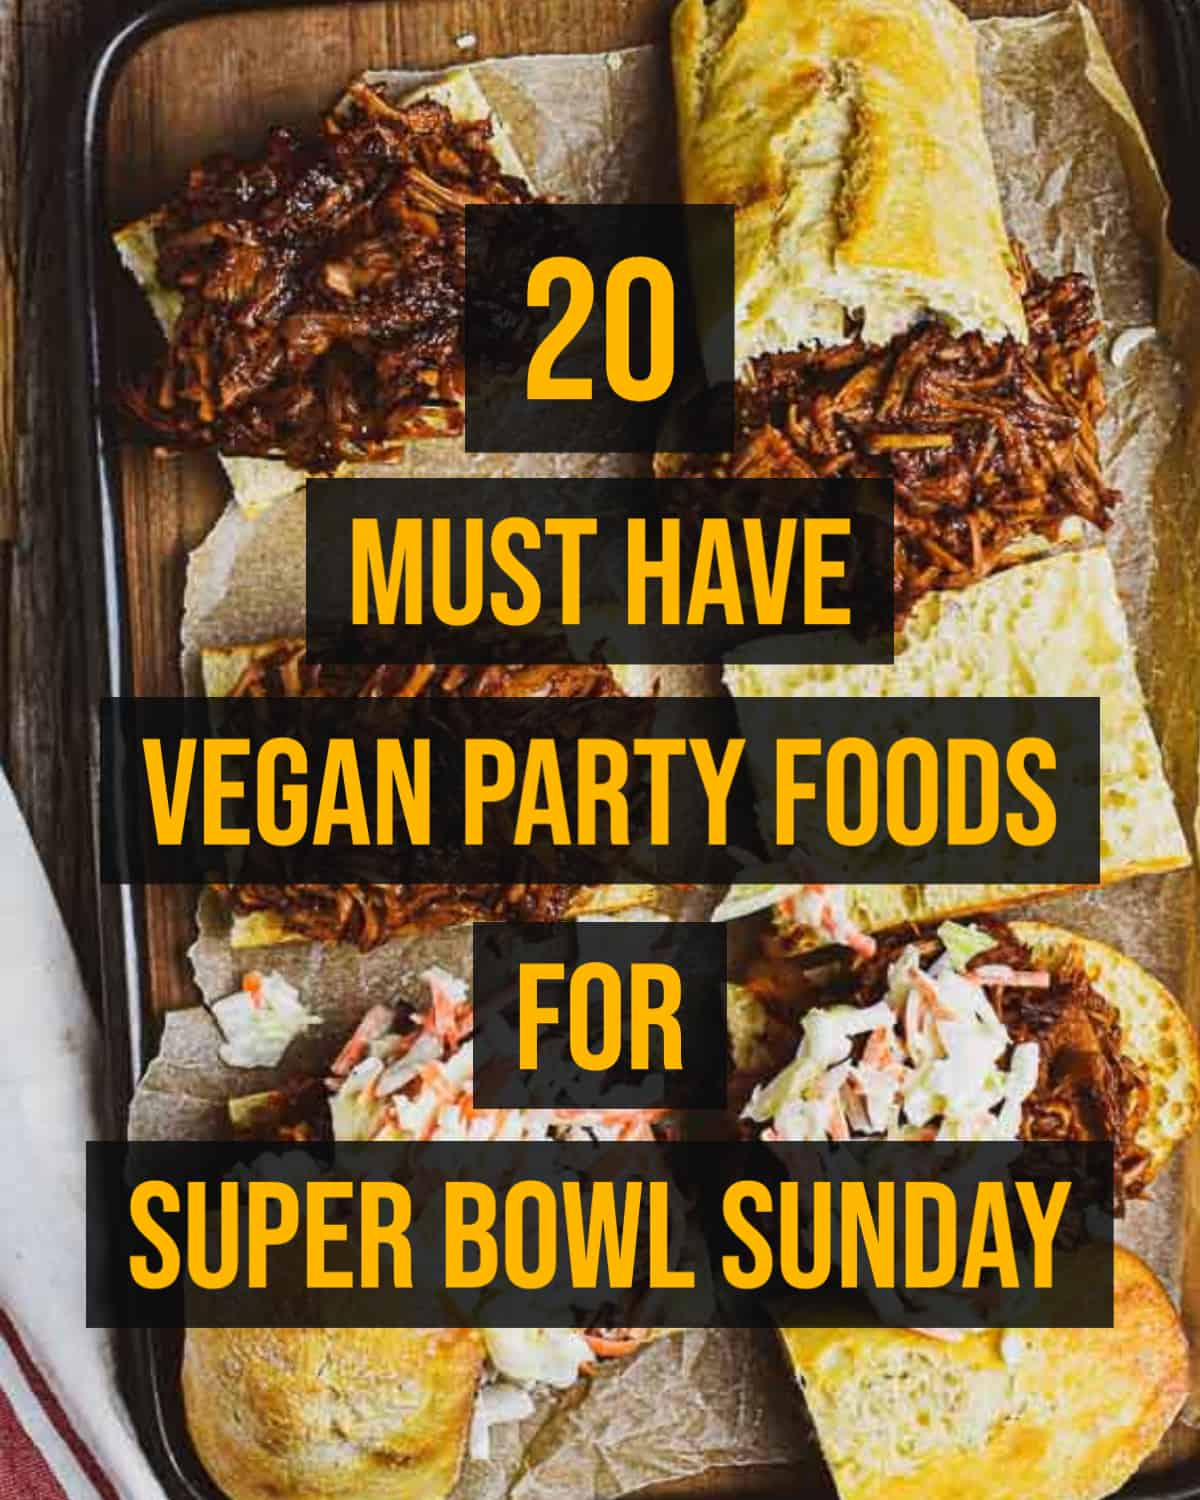 20 vegan party foods for super bowl sunday.